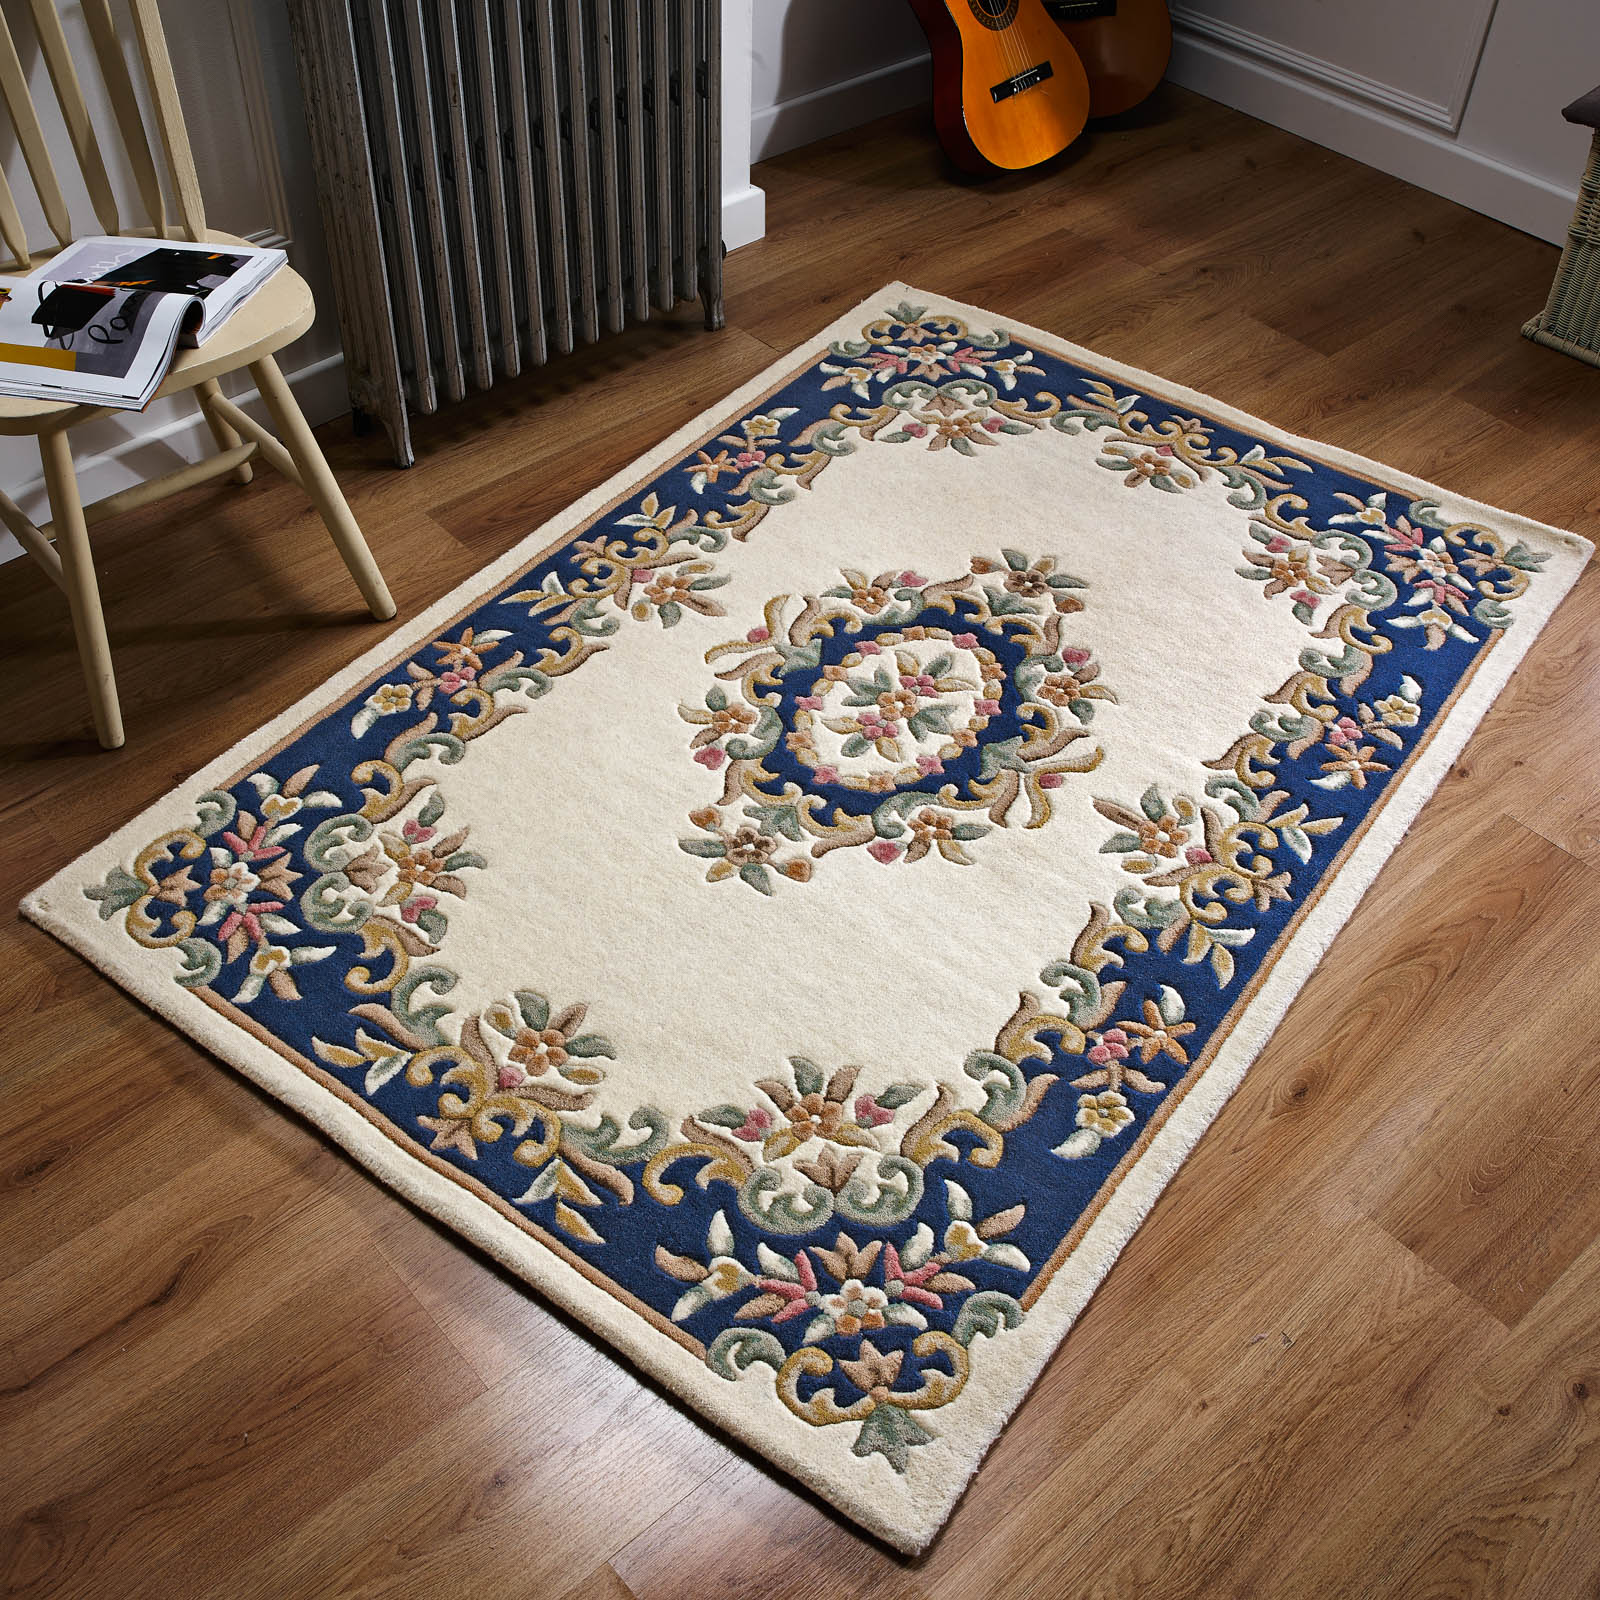 Royal Aubusson Wool Rugs